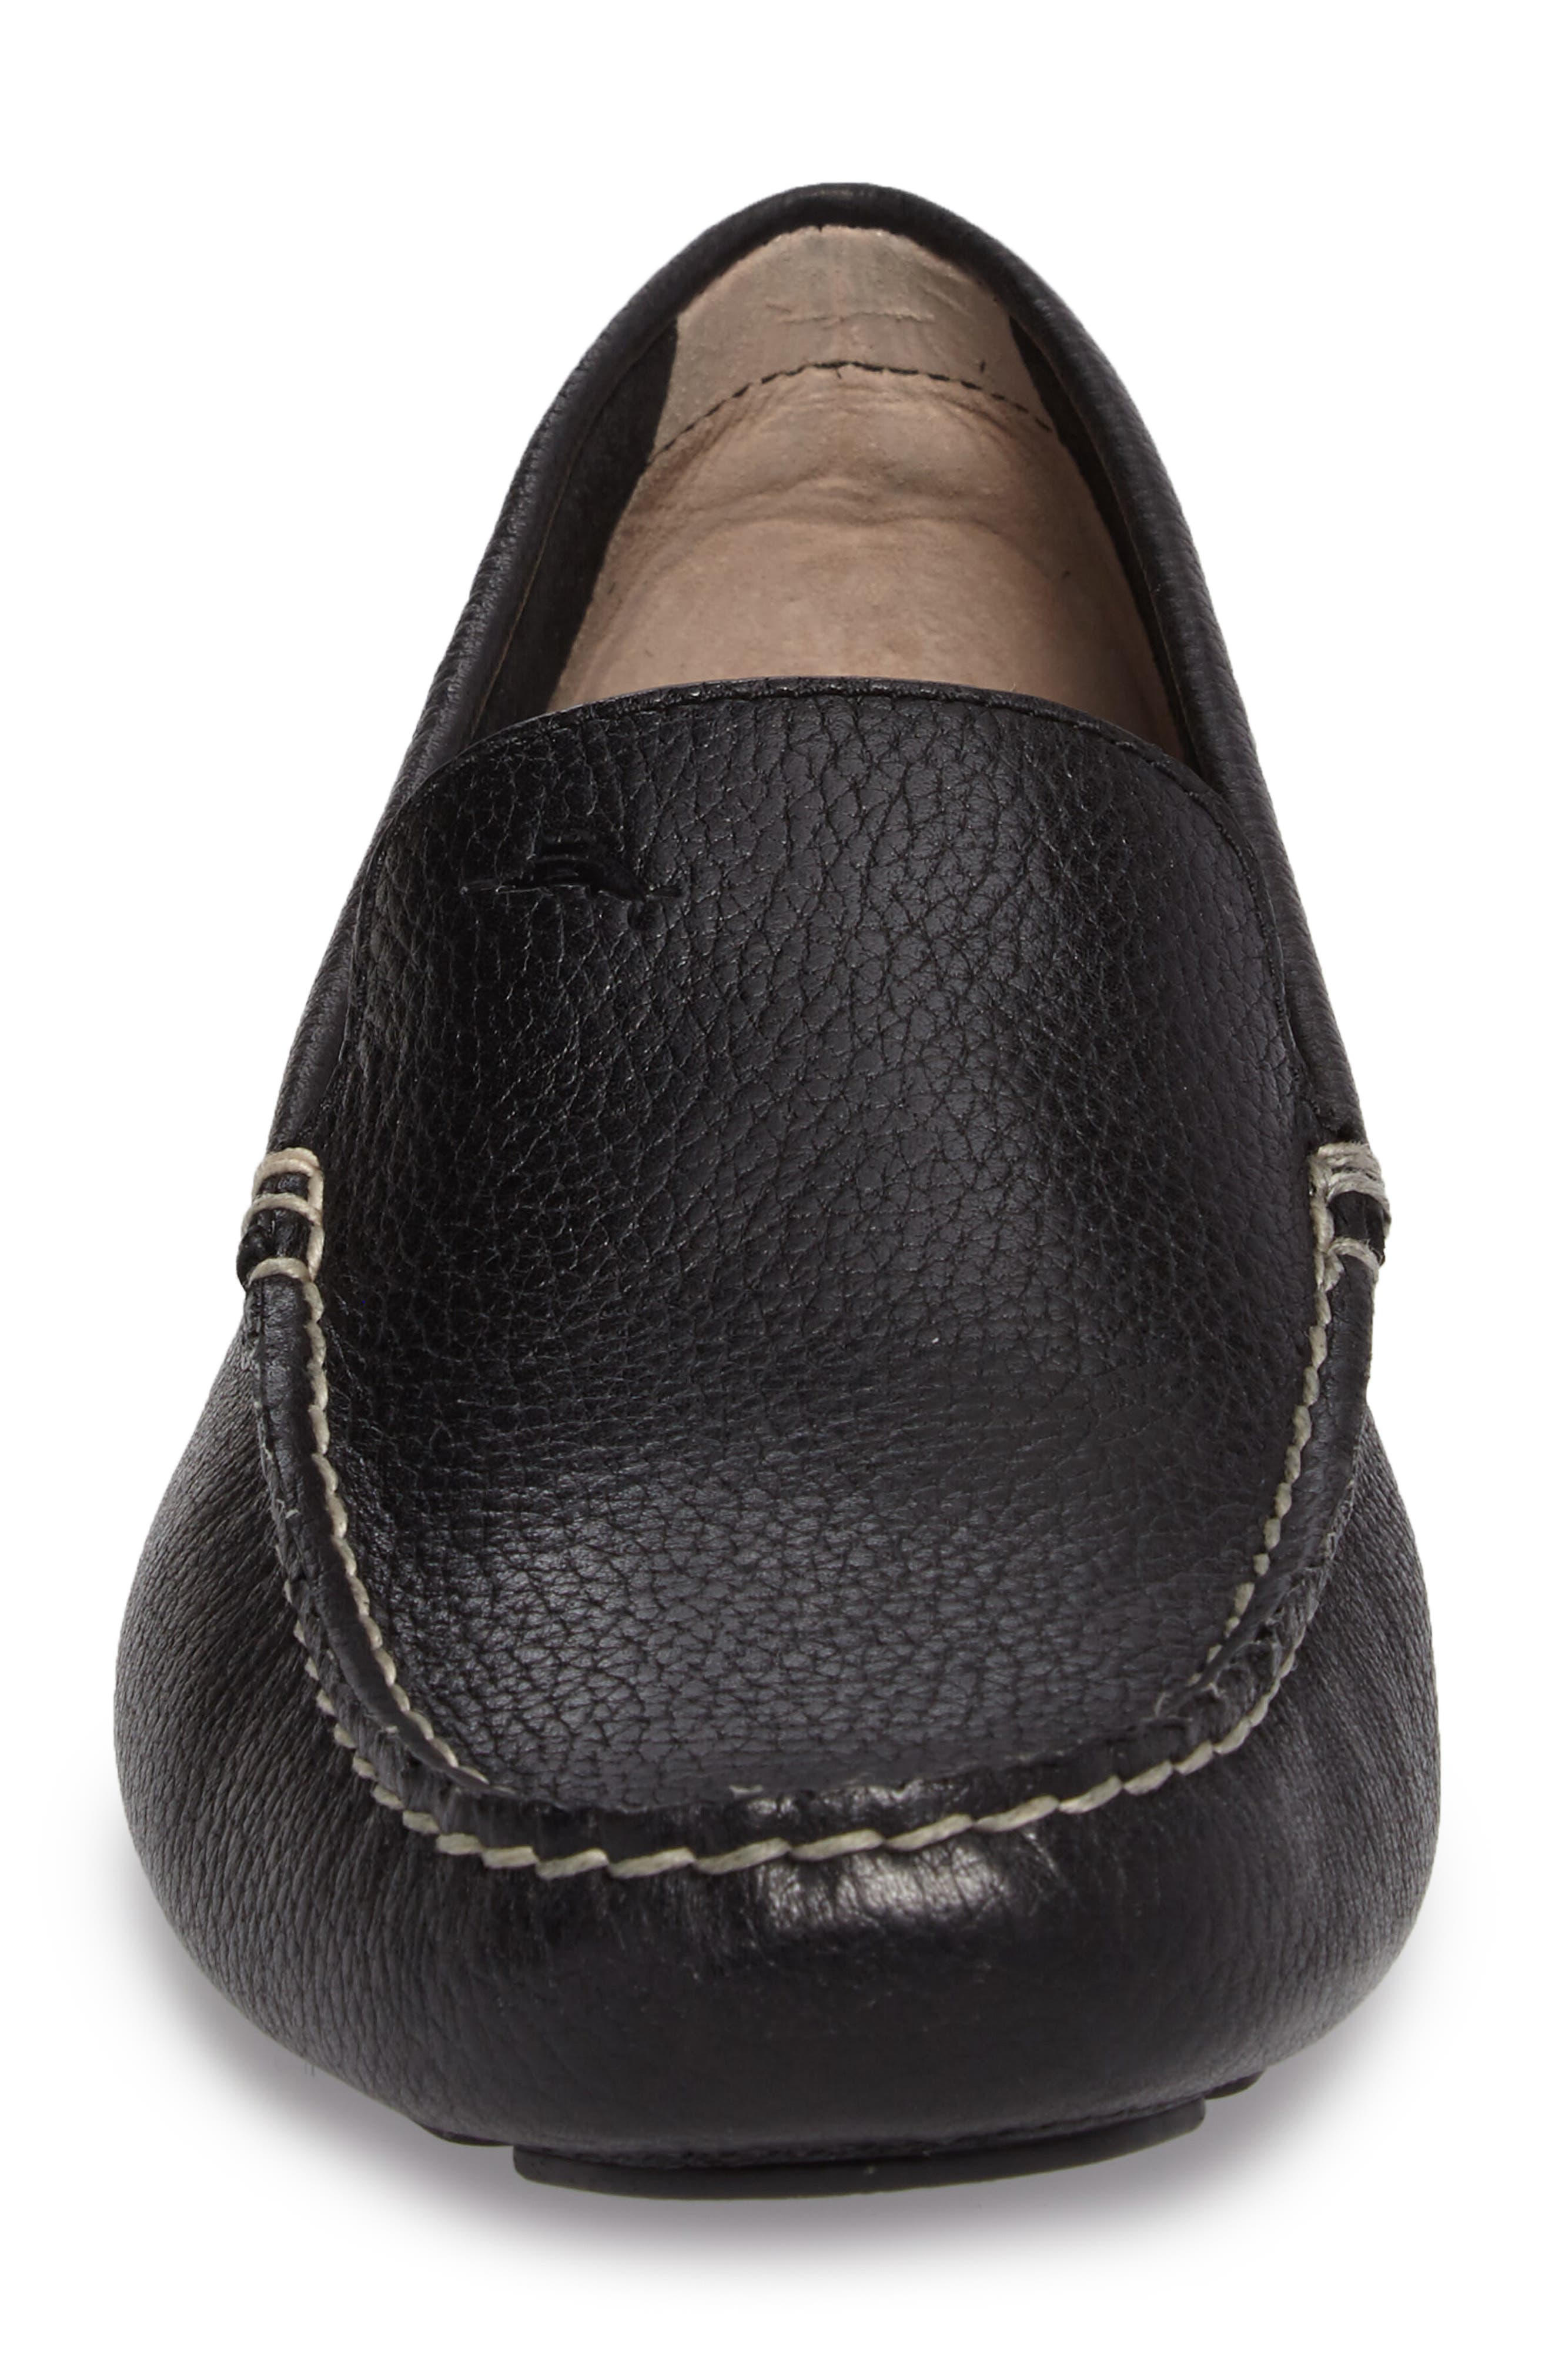 Pagota Driving Loafer,                             Alternate thumbnail 4, color,                             BLACK LEATHER